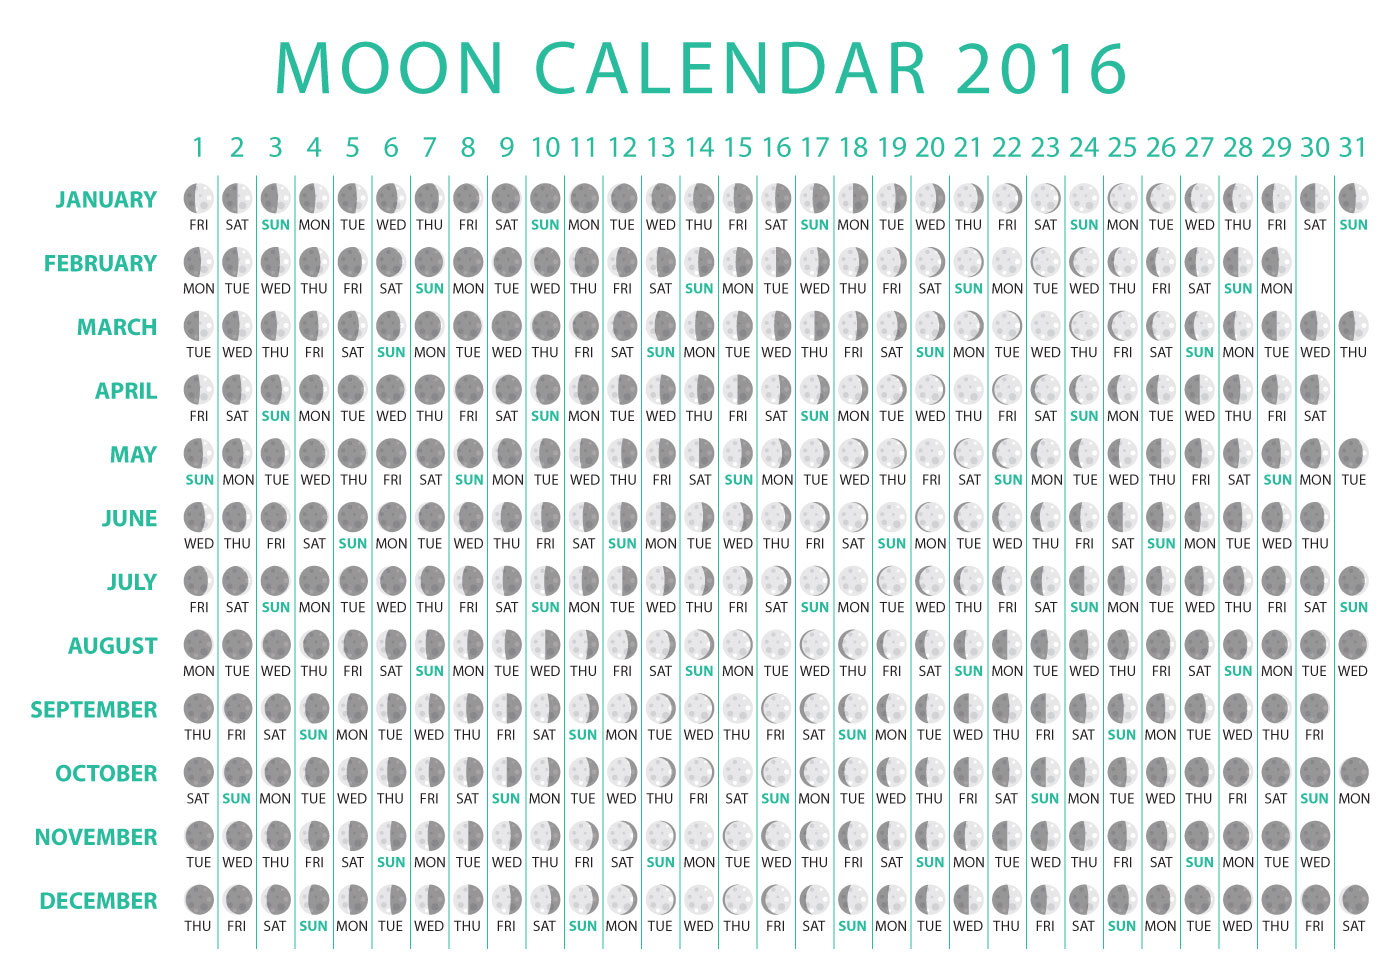 Daily Moon Phases 2016 | Search Results | Calendar 2015